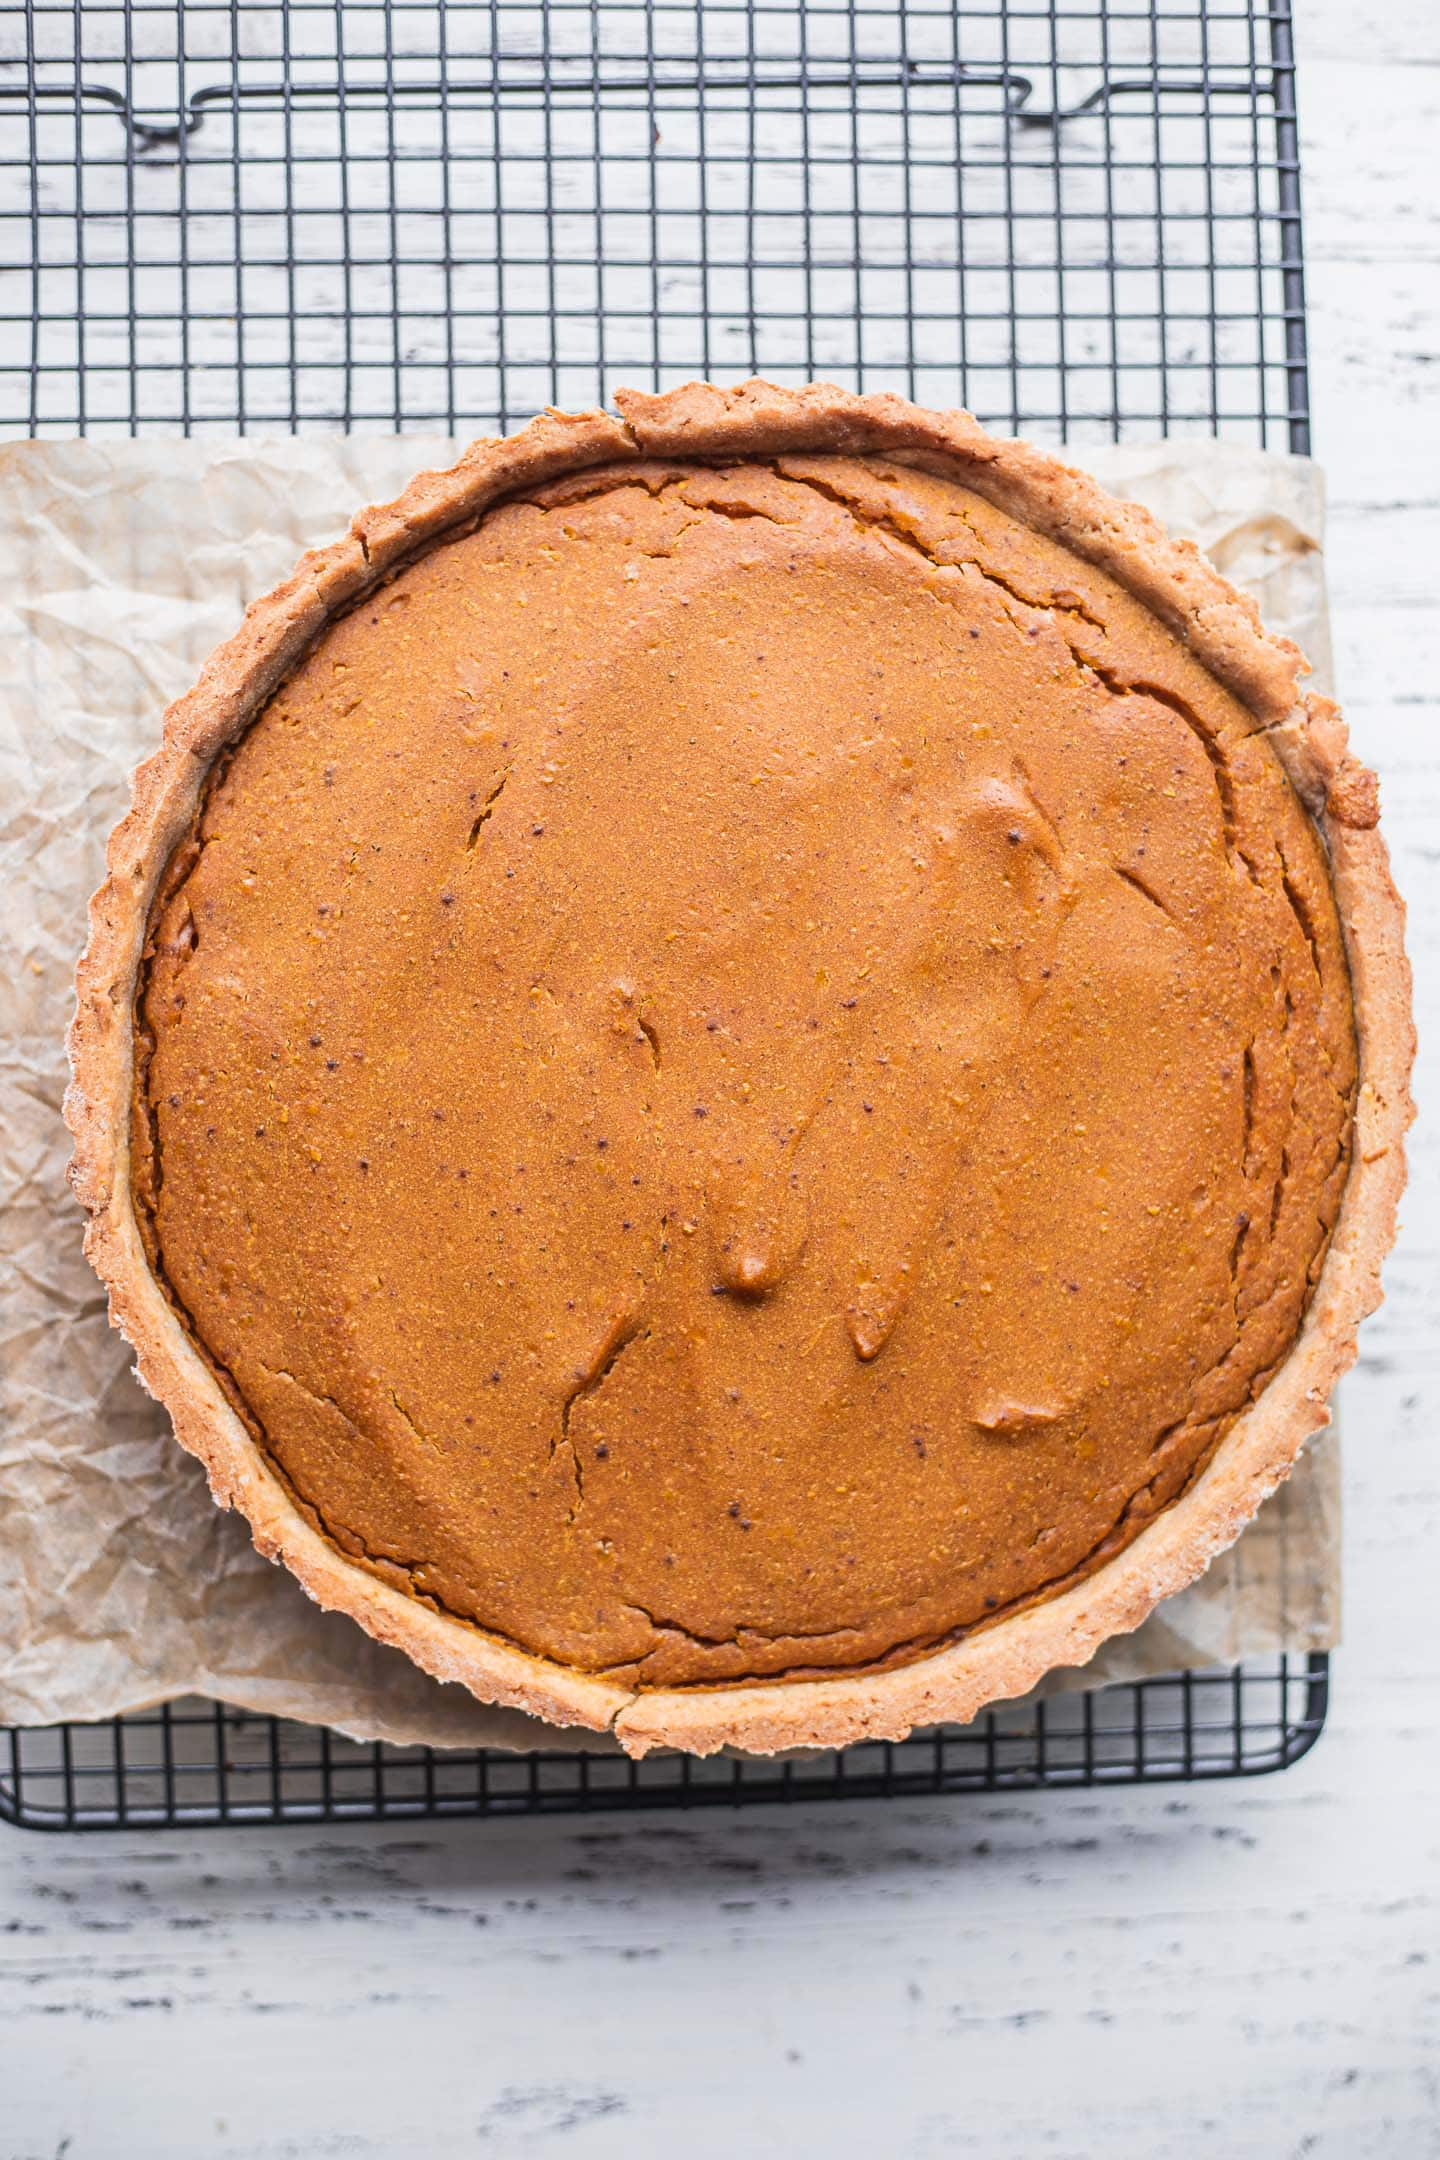 Dairy-free pumpkin pie on a cooling rack